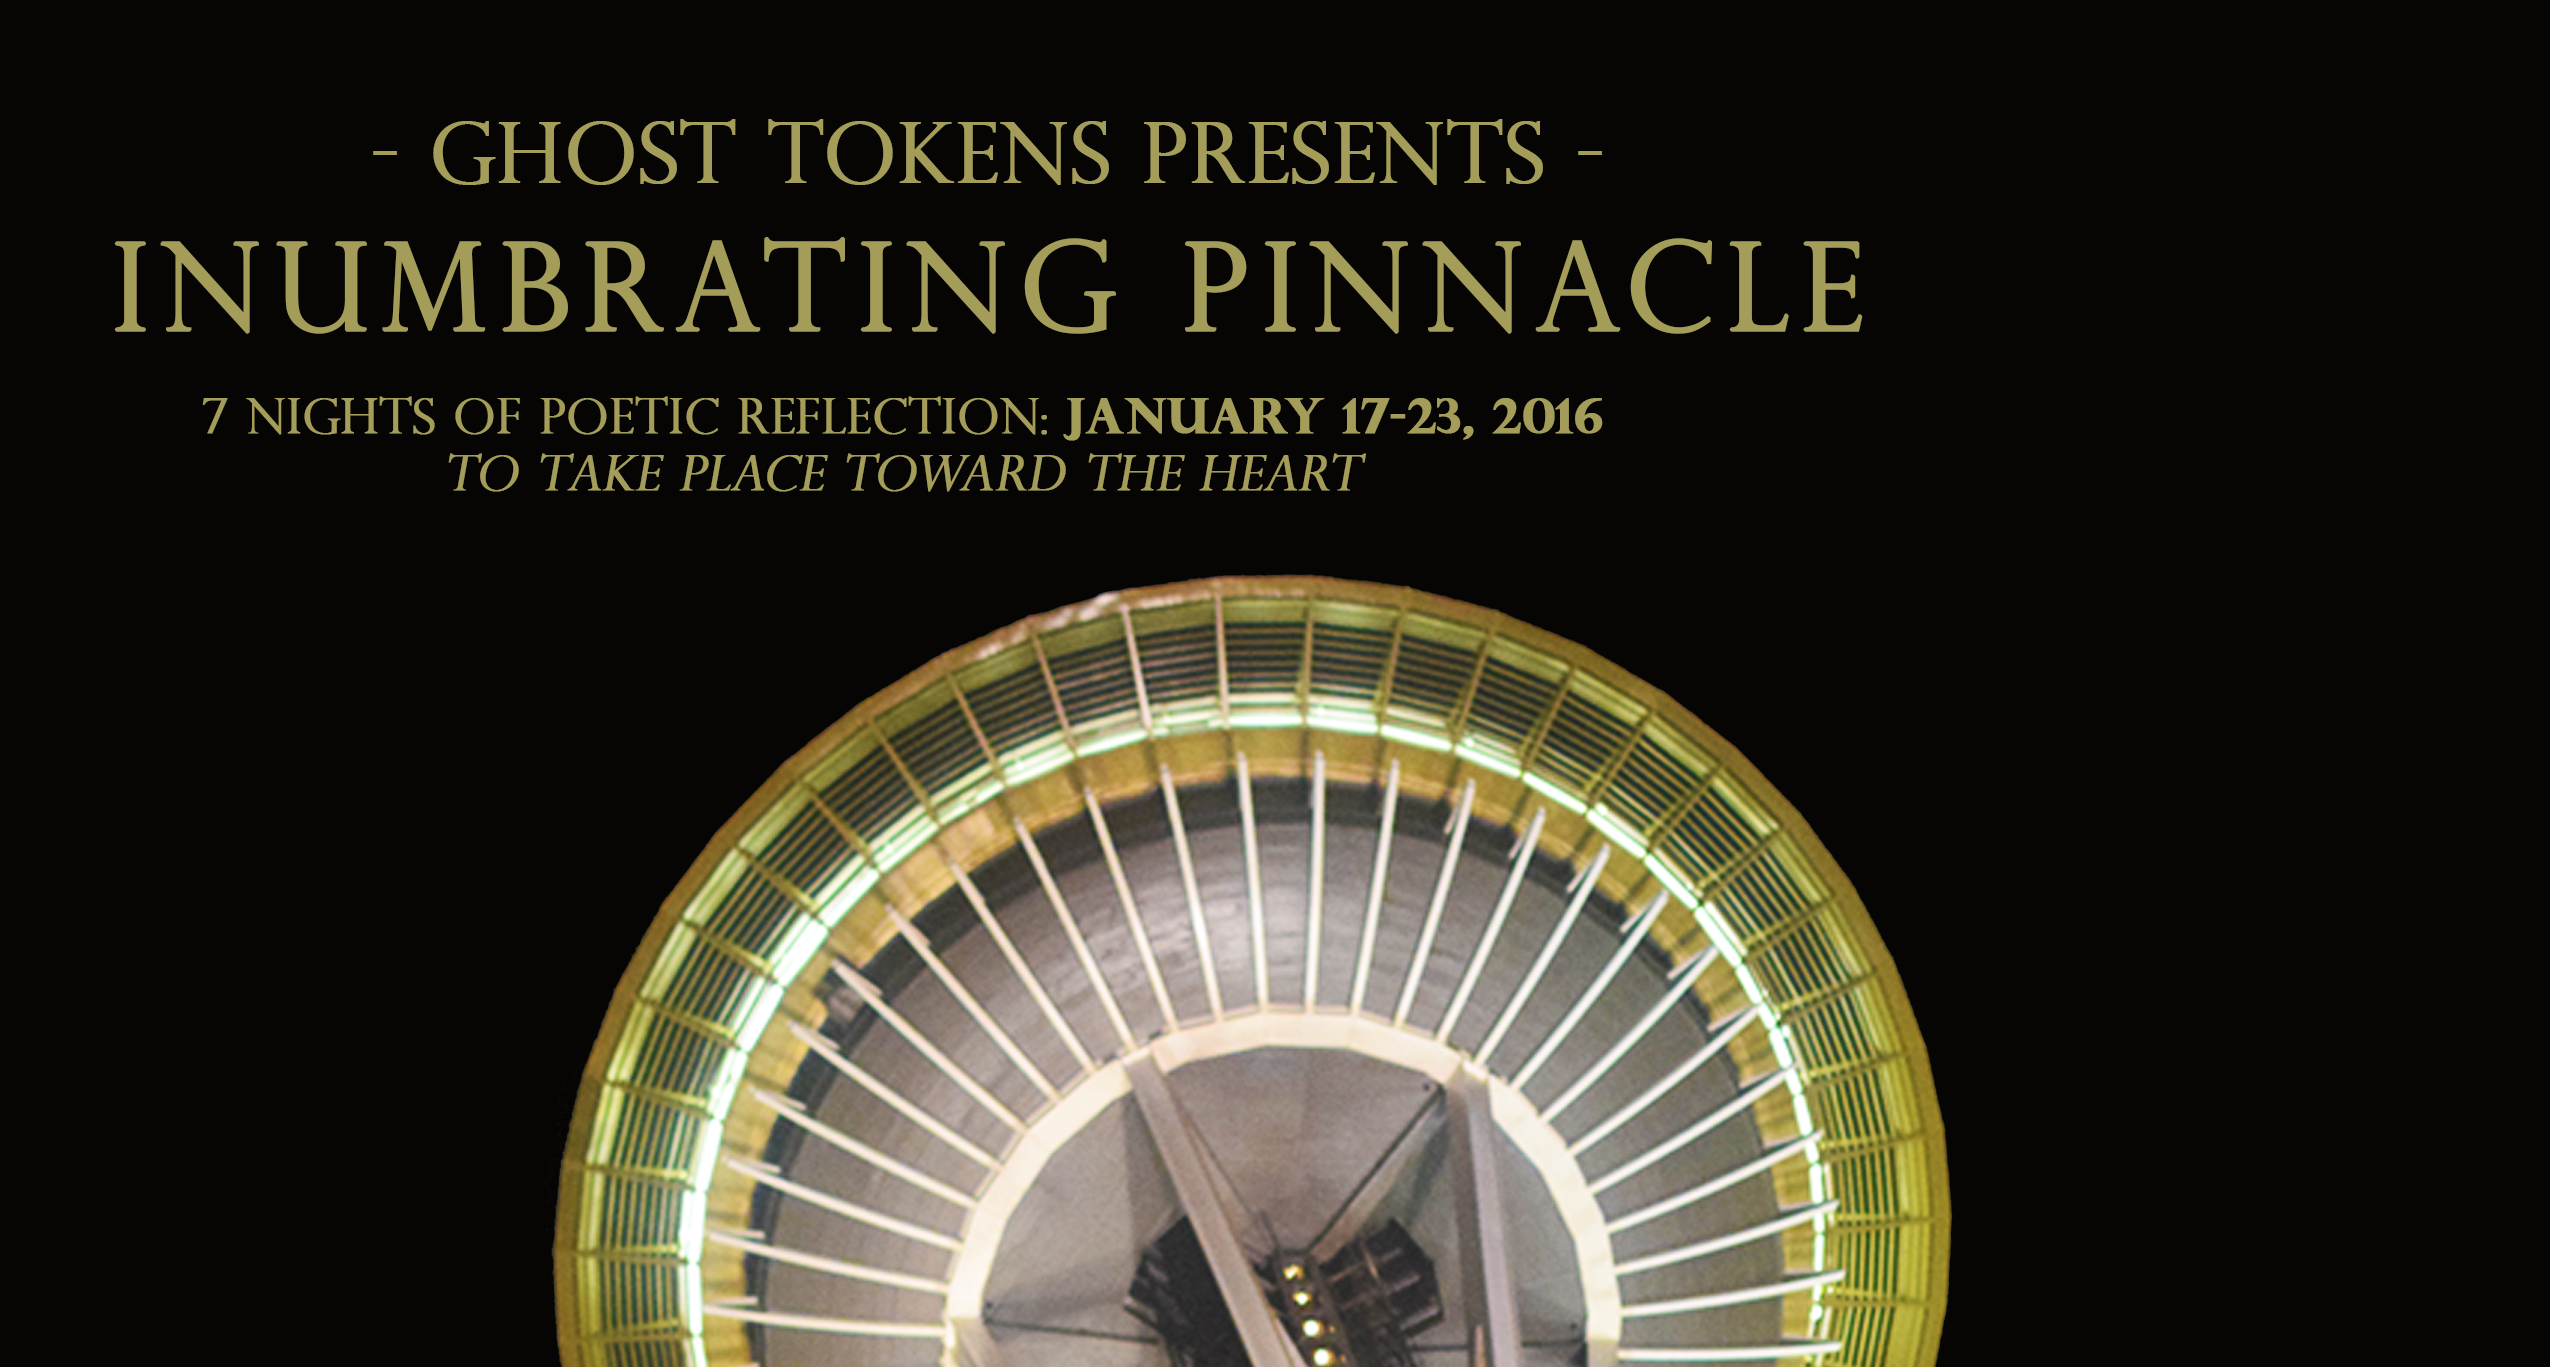 ghost tokens inumbrating pinnacle